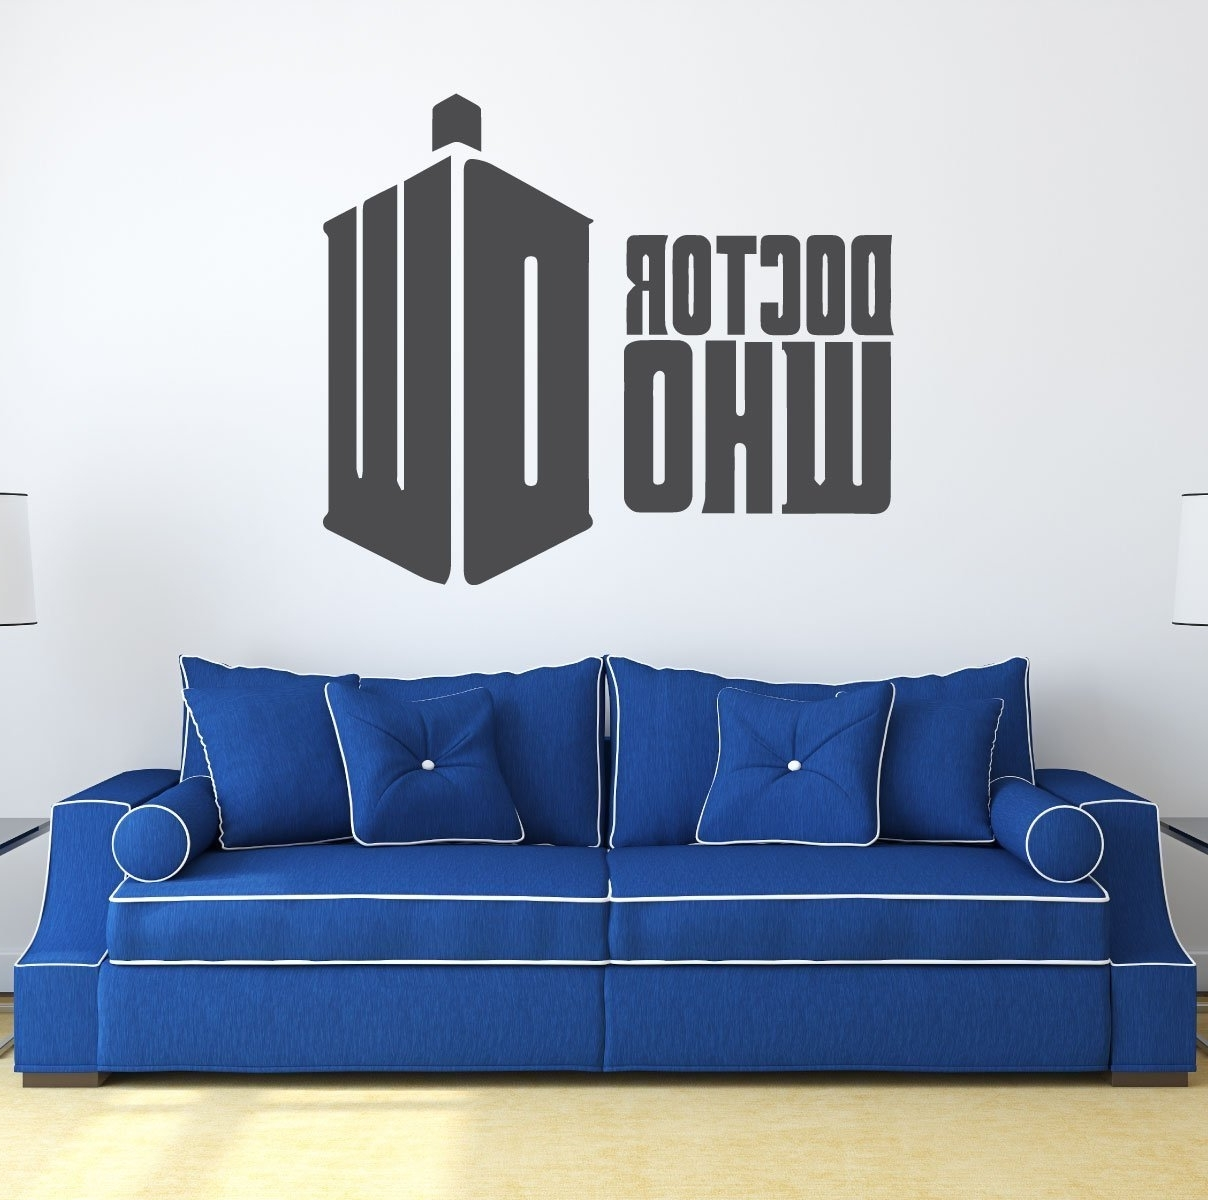 Doctor Who Wall Art Inside Fashionable Doctor Who Wall Art – Doctor Who Dw – Whovian Gifts (View 5 of 15)